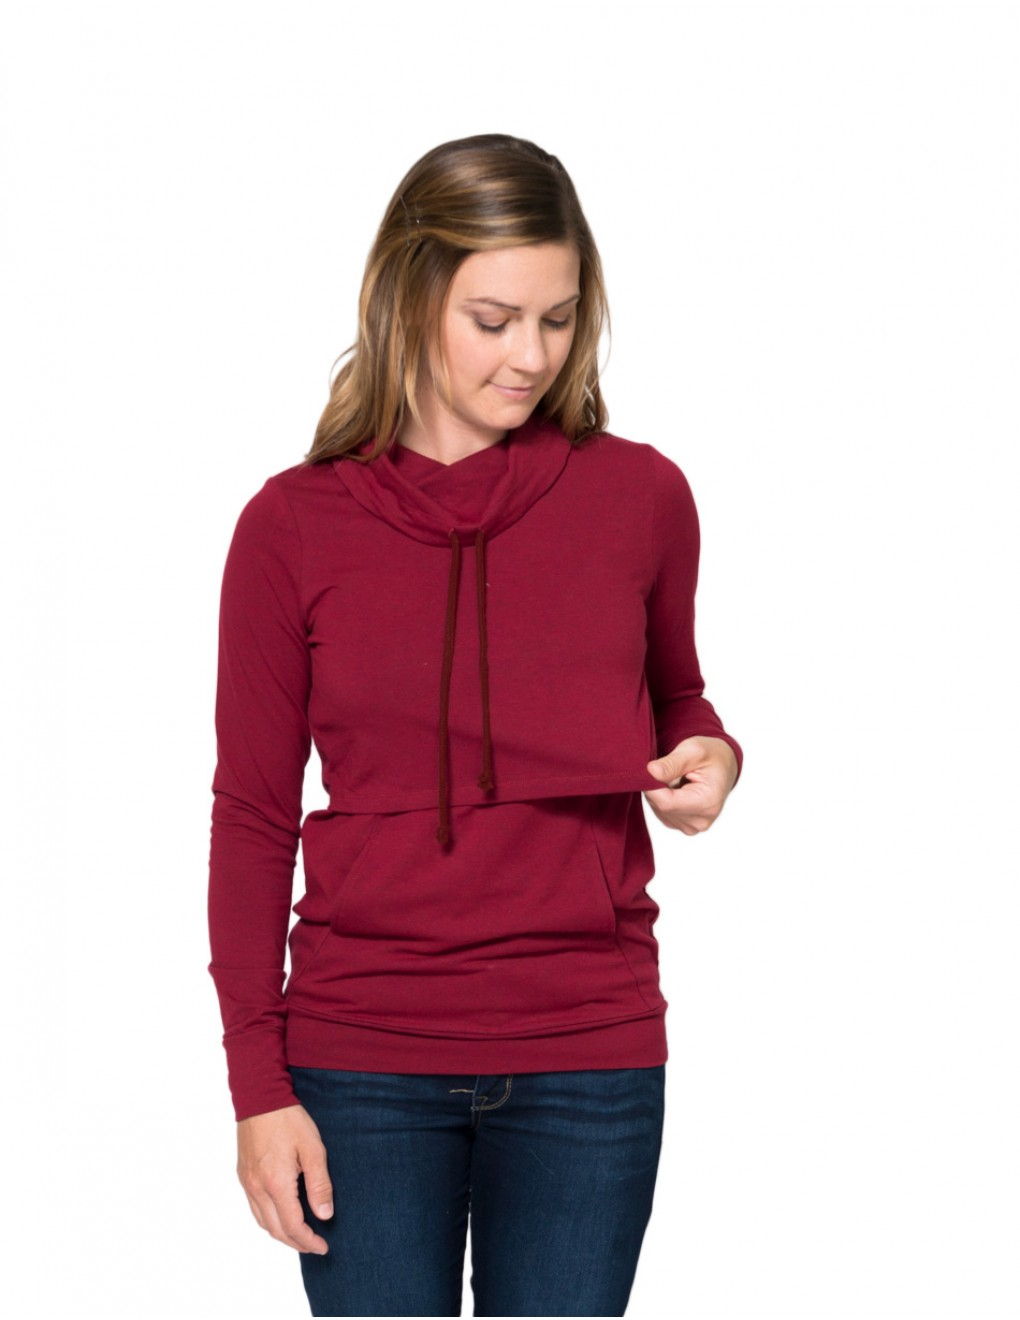 momzelle-new-turtleneck-deep-red-heather-nursing-top-opening